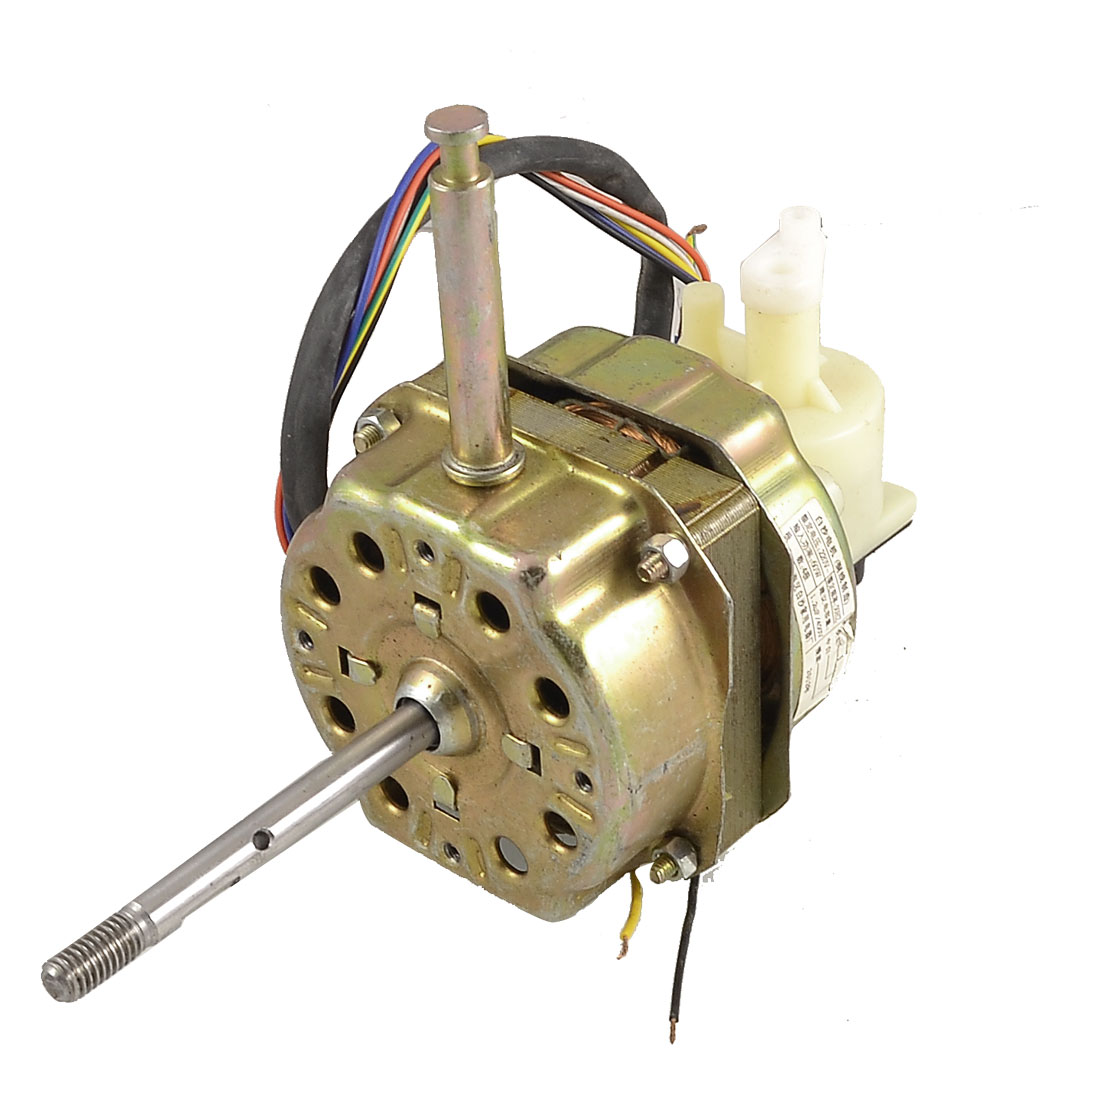 8mm-Diameter-Shaft-Desk-Micro-Motor-AC-220V-60W-50Hz